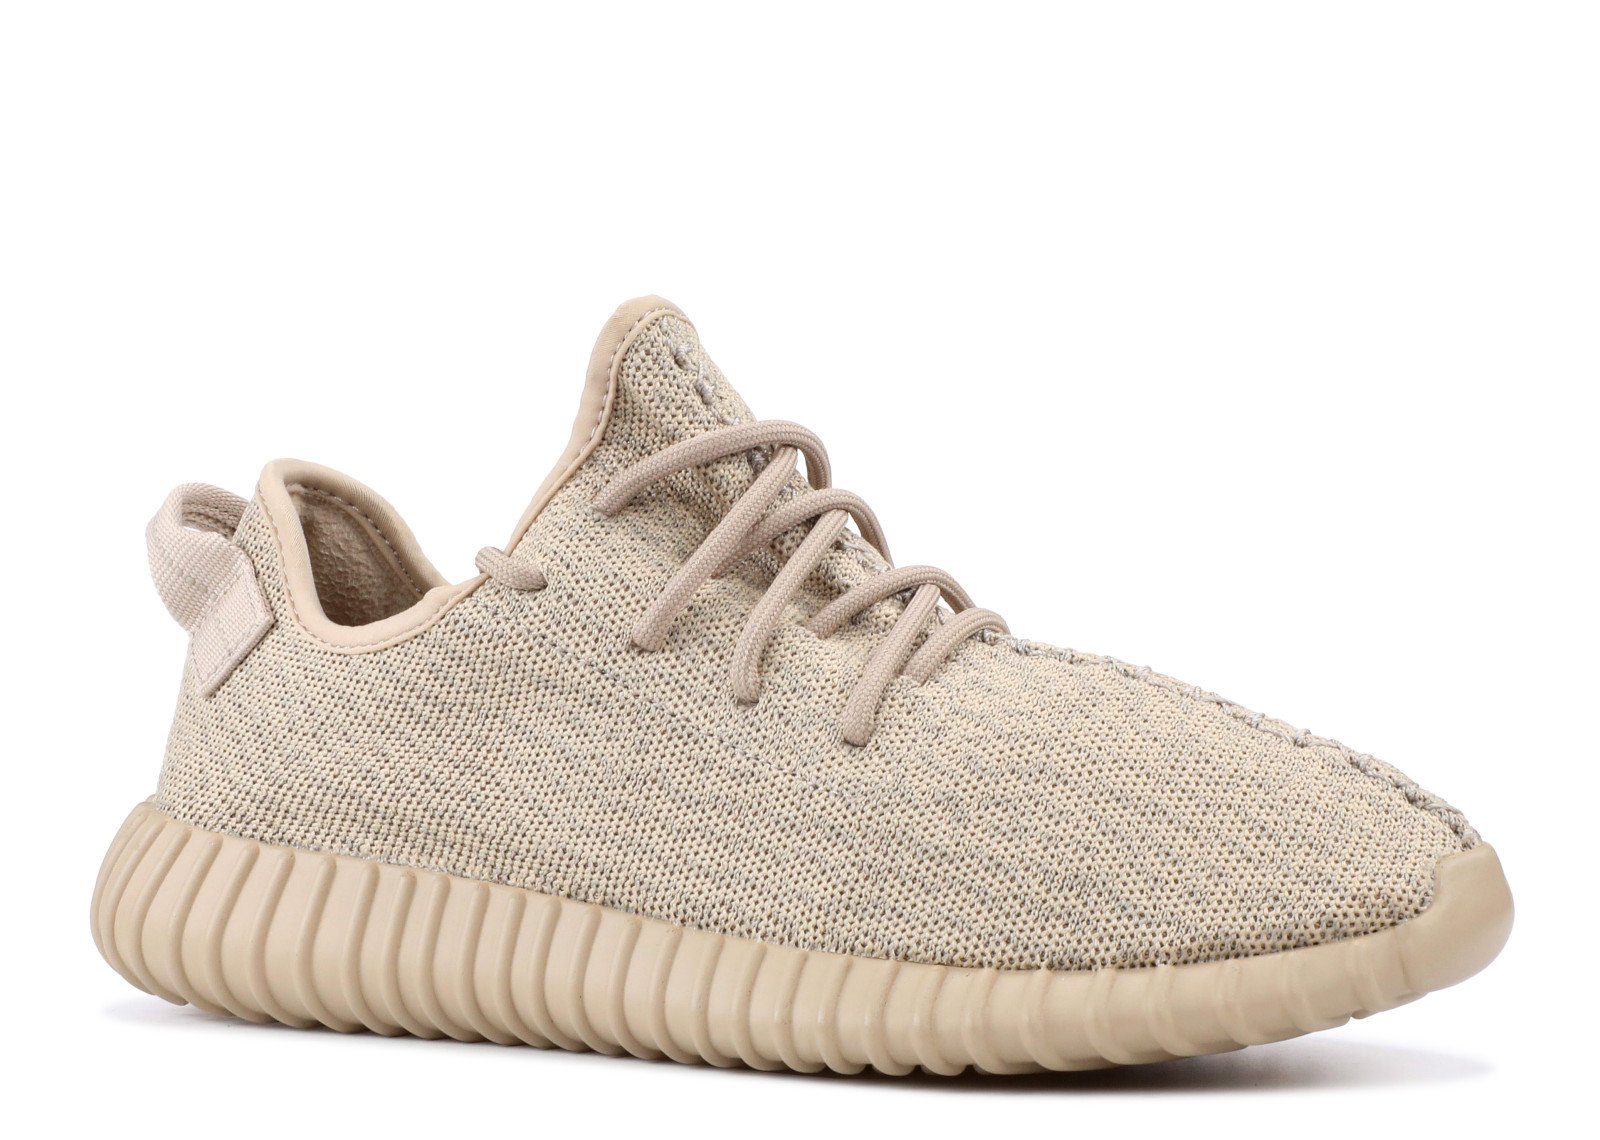 finest selection 71725 cf72d Adidas Yeezy Boost 350